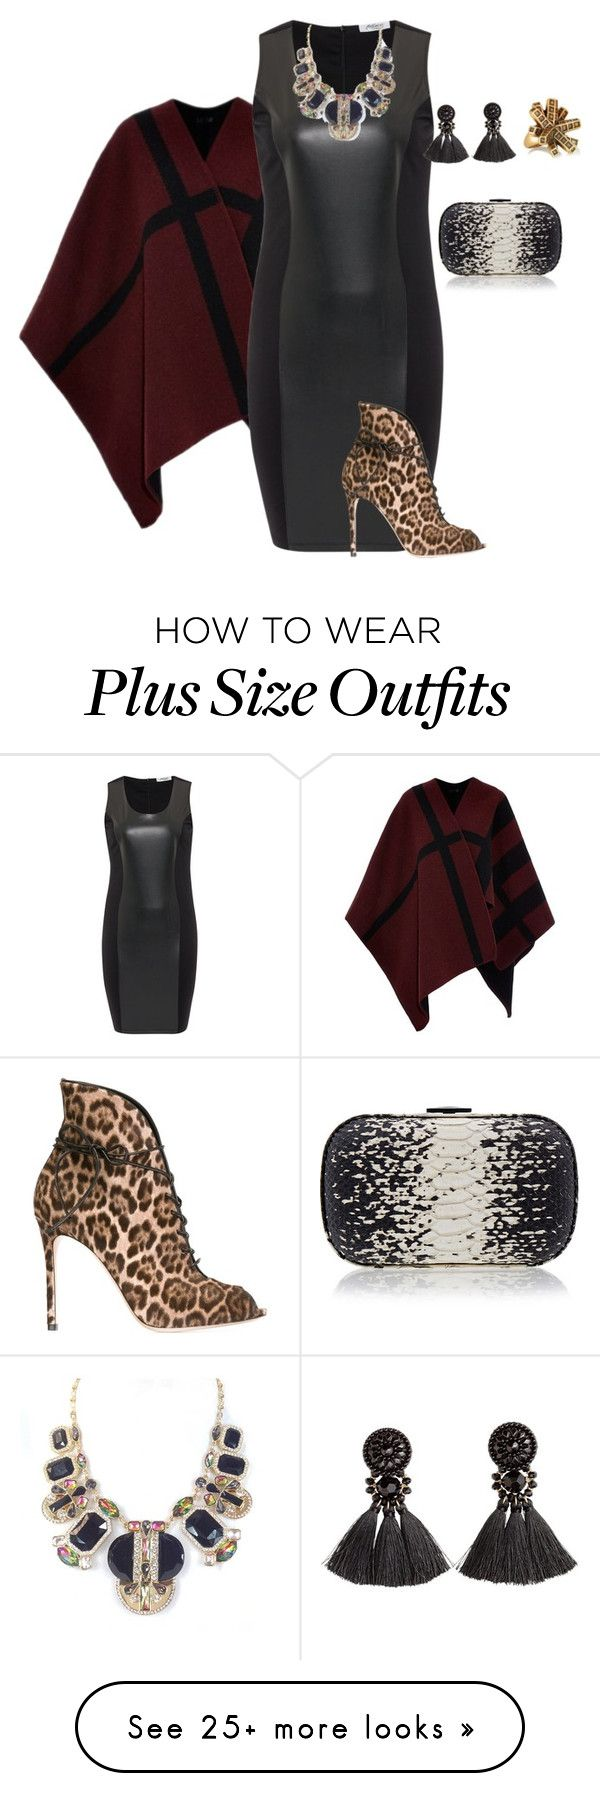 25 best ideas about diva fashion on pinterest fashion show party diva party and diva party - Diva style fashion ...